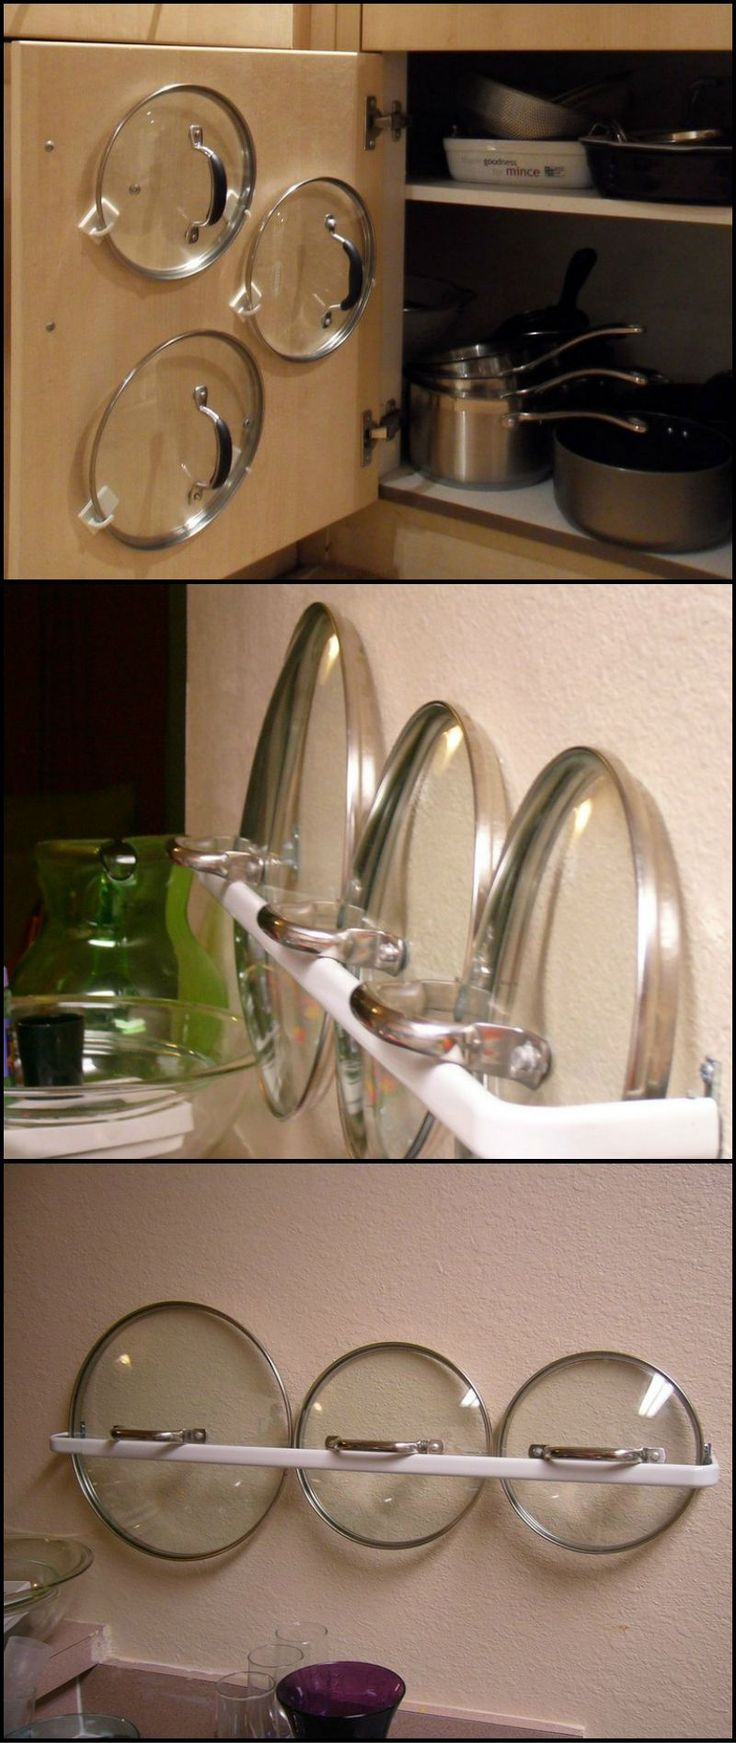 9e5f2d27afffeb772549f0eba170ecb6 6 Affordable Organizing and Decoration Ideas for your Kitchen